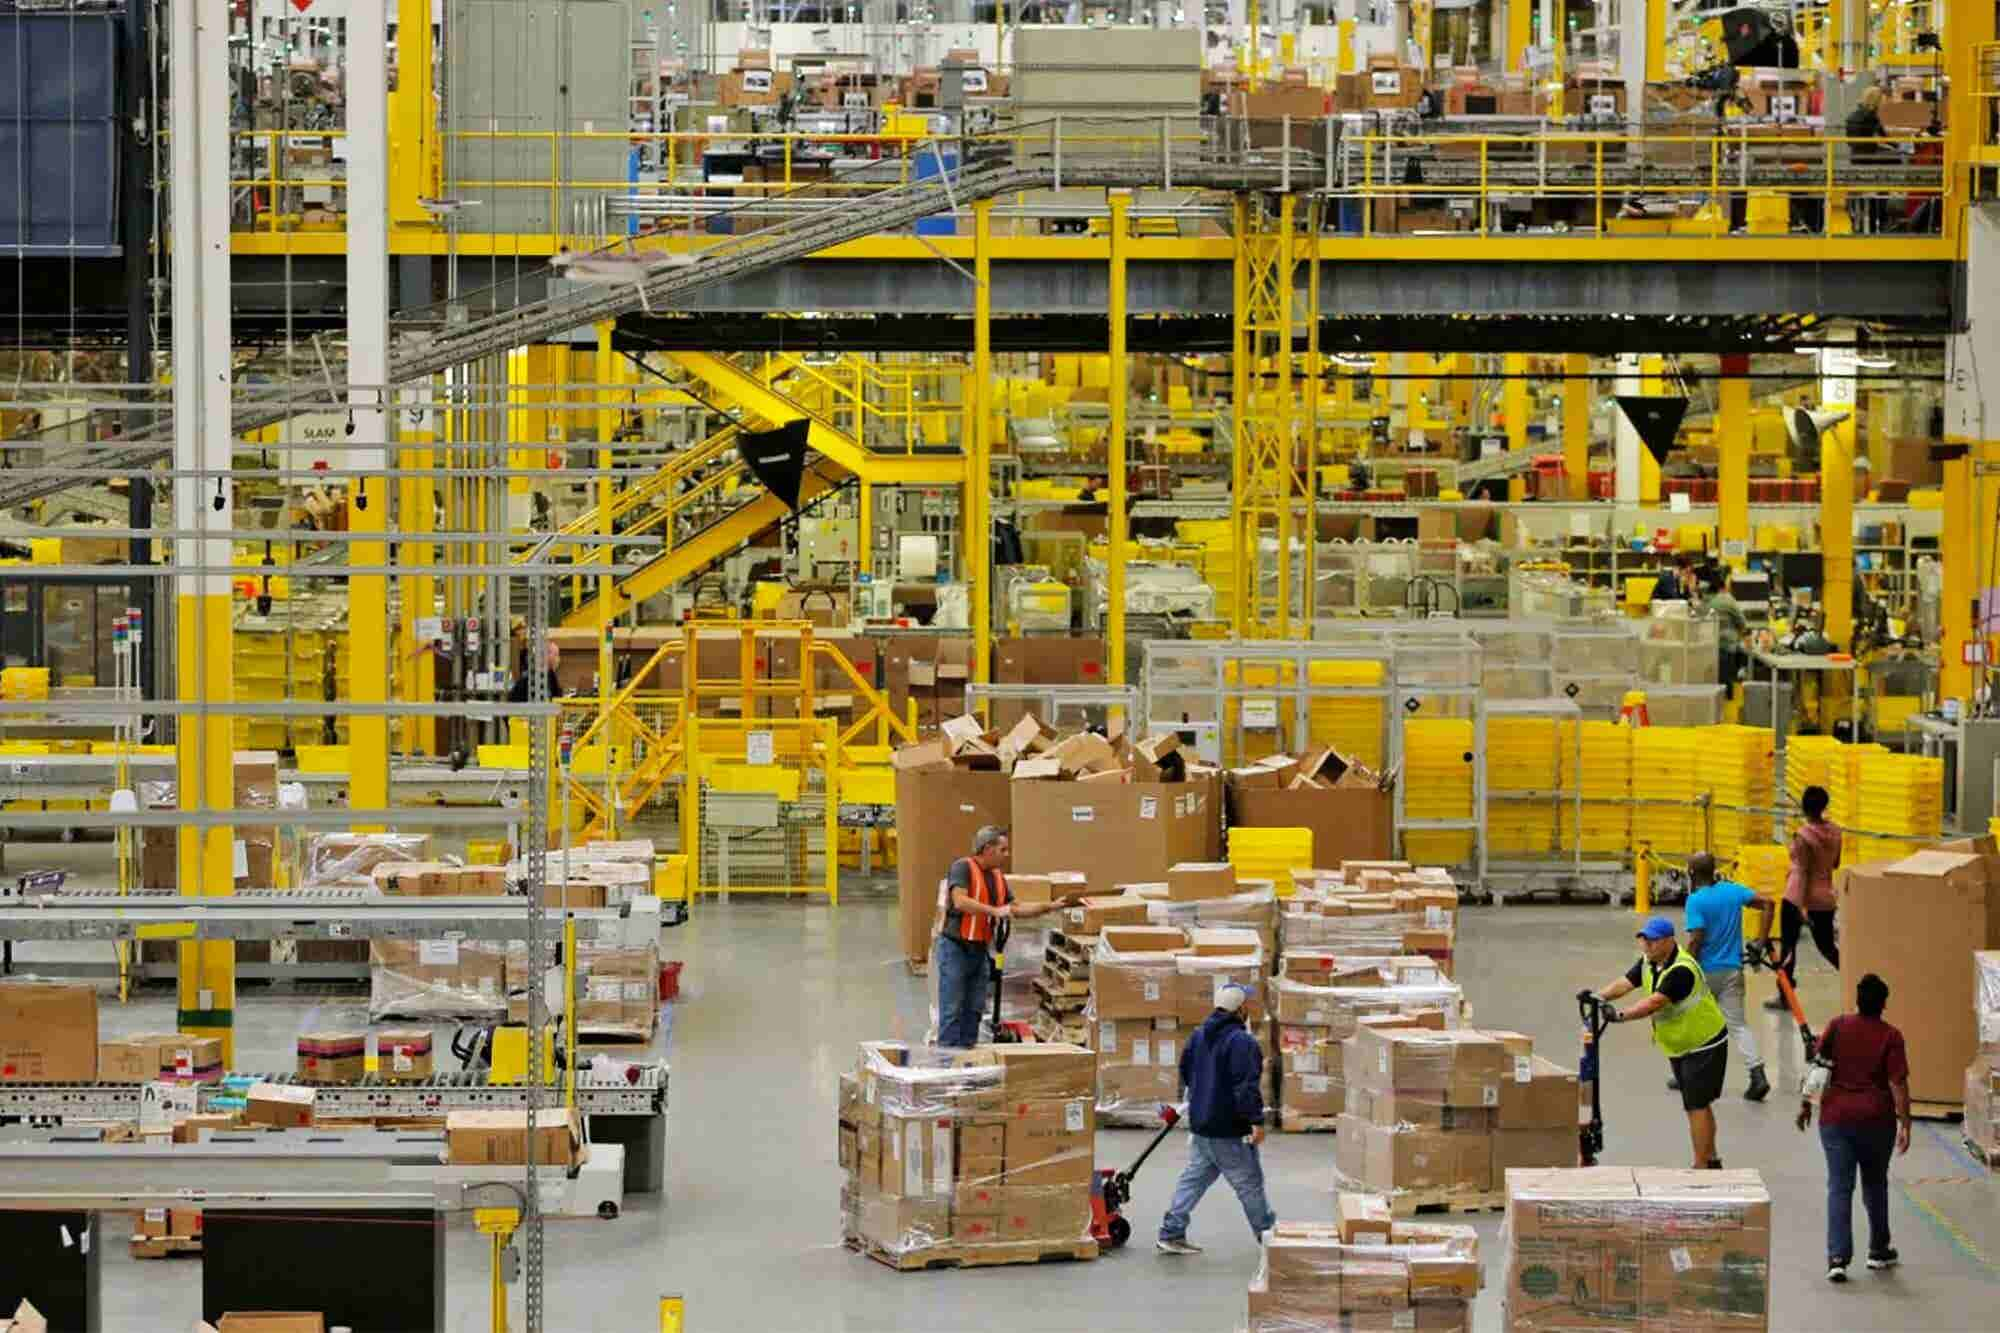 Amazon Calls Bernie Sanders's Working Conditions Claims 'Misleading'